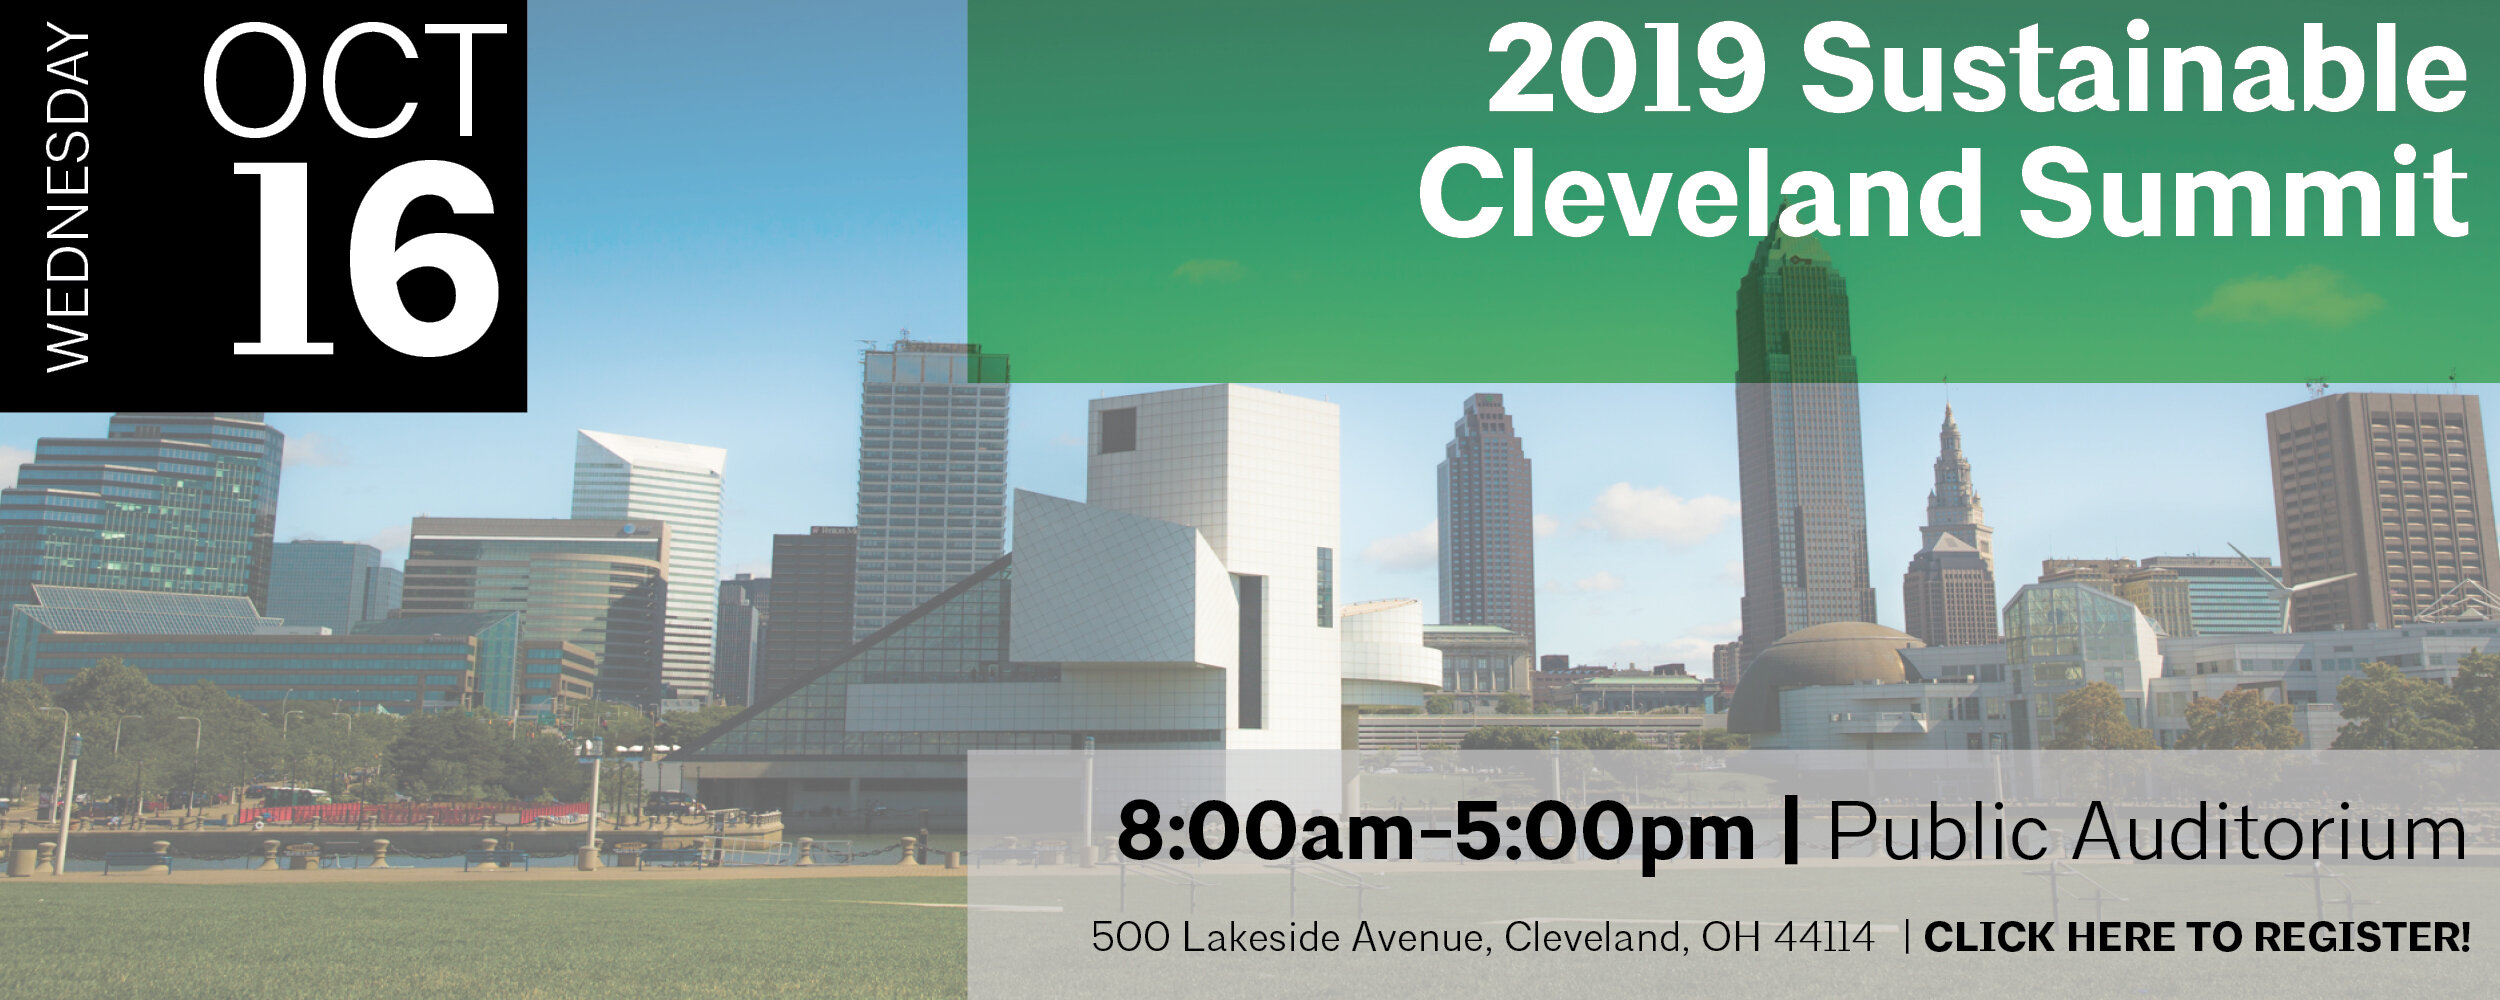 2019_1016_Event_Sustainable CLE.jpg